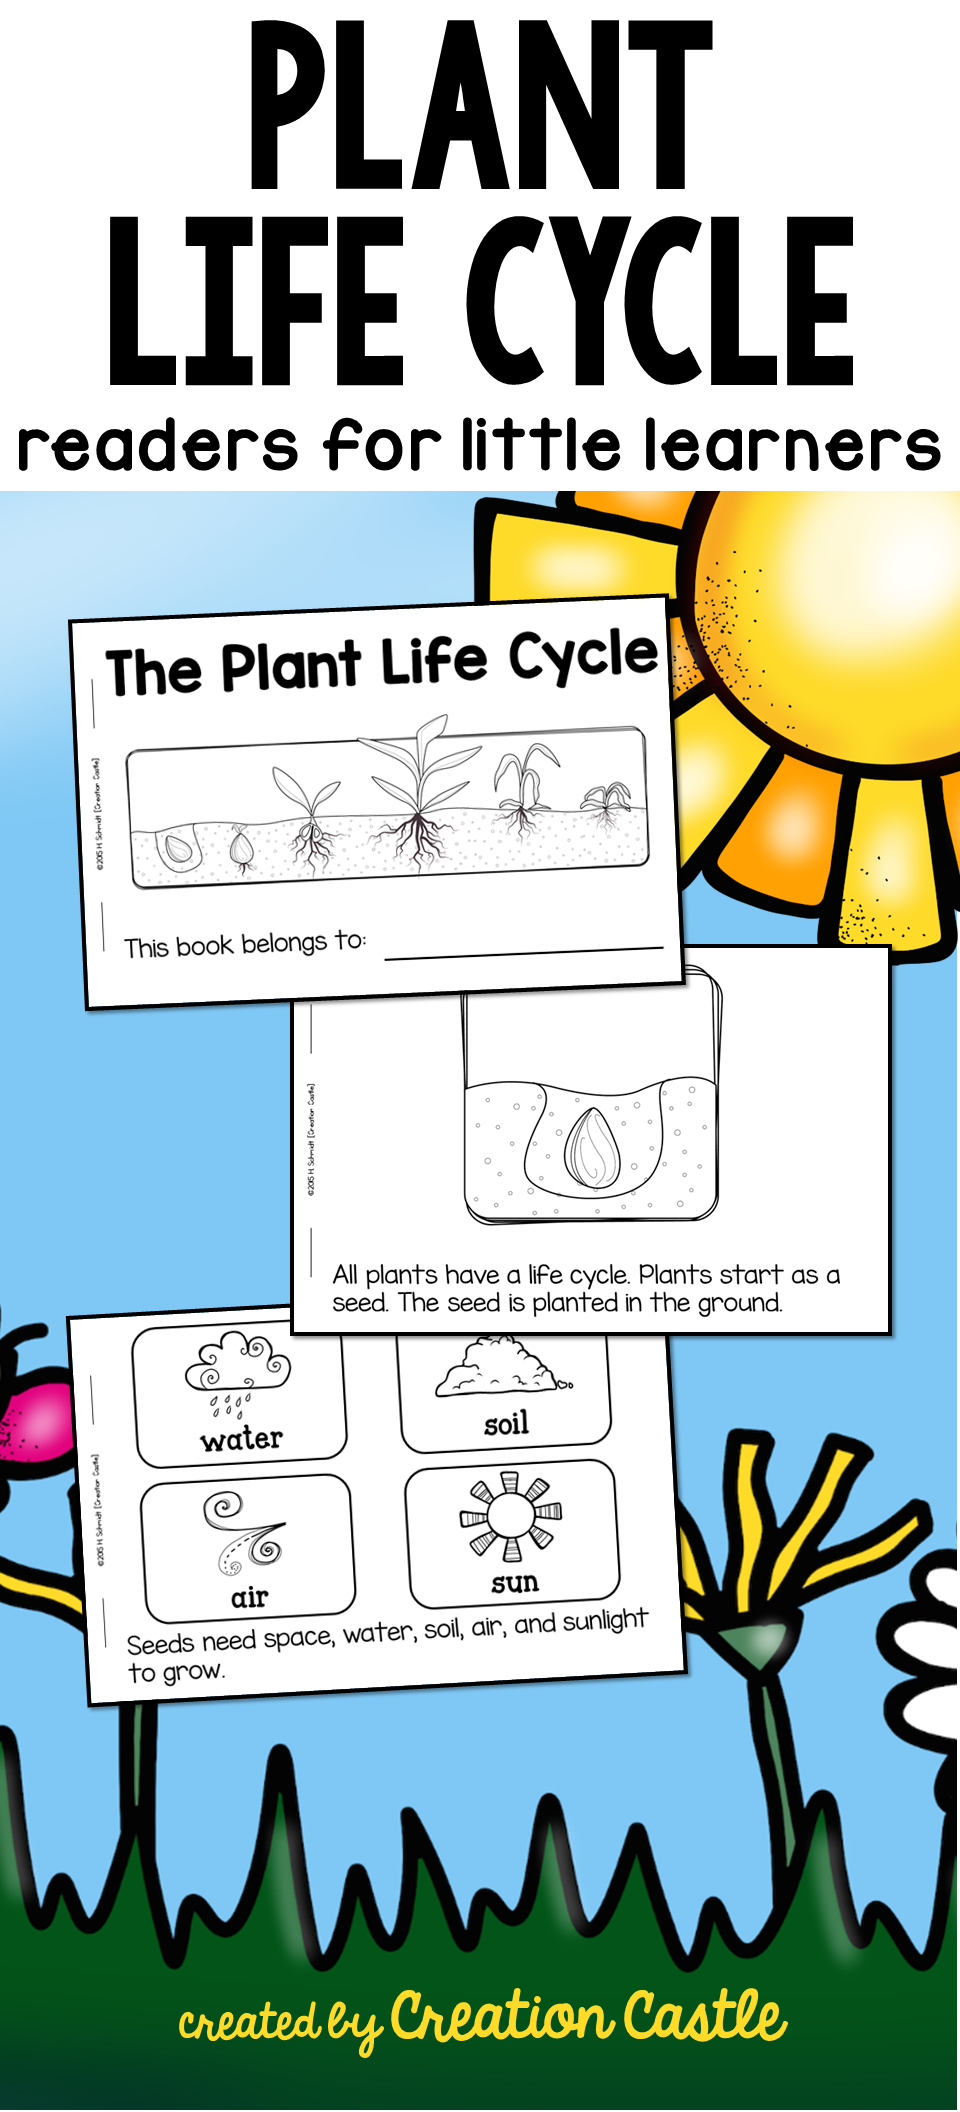 Plant Life Cycle Guided Reading Book | Kind und Schule